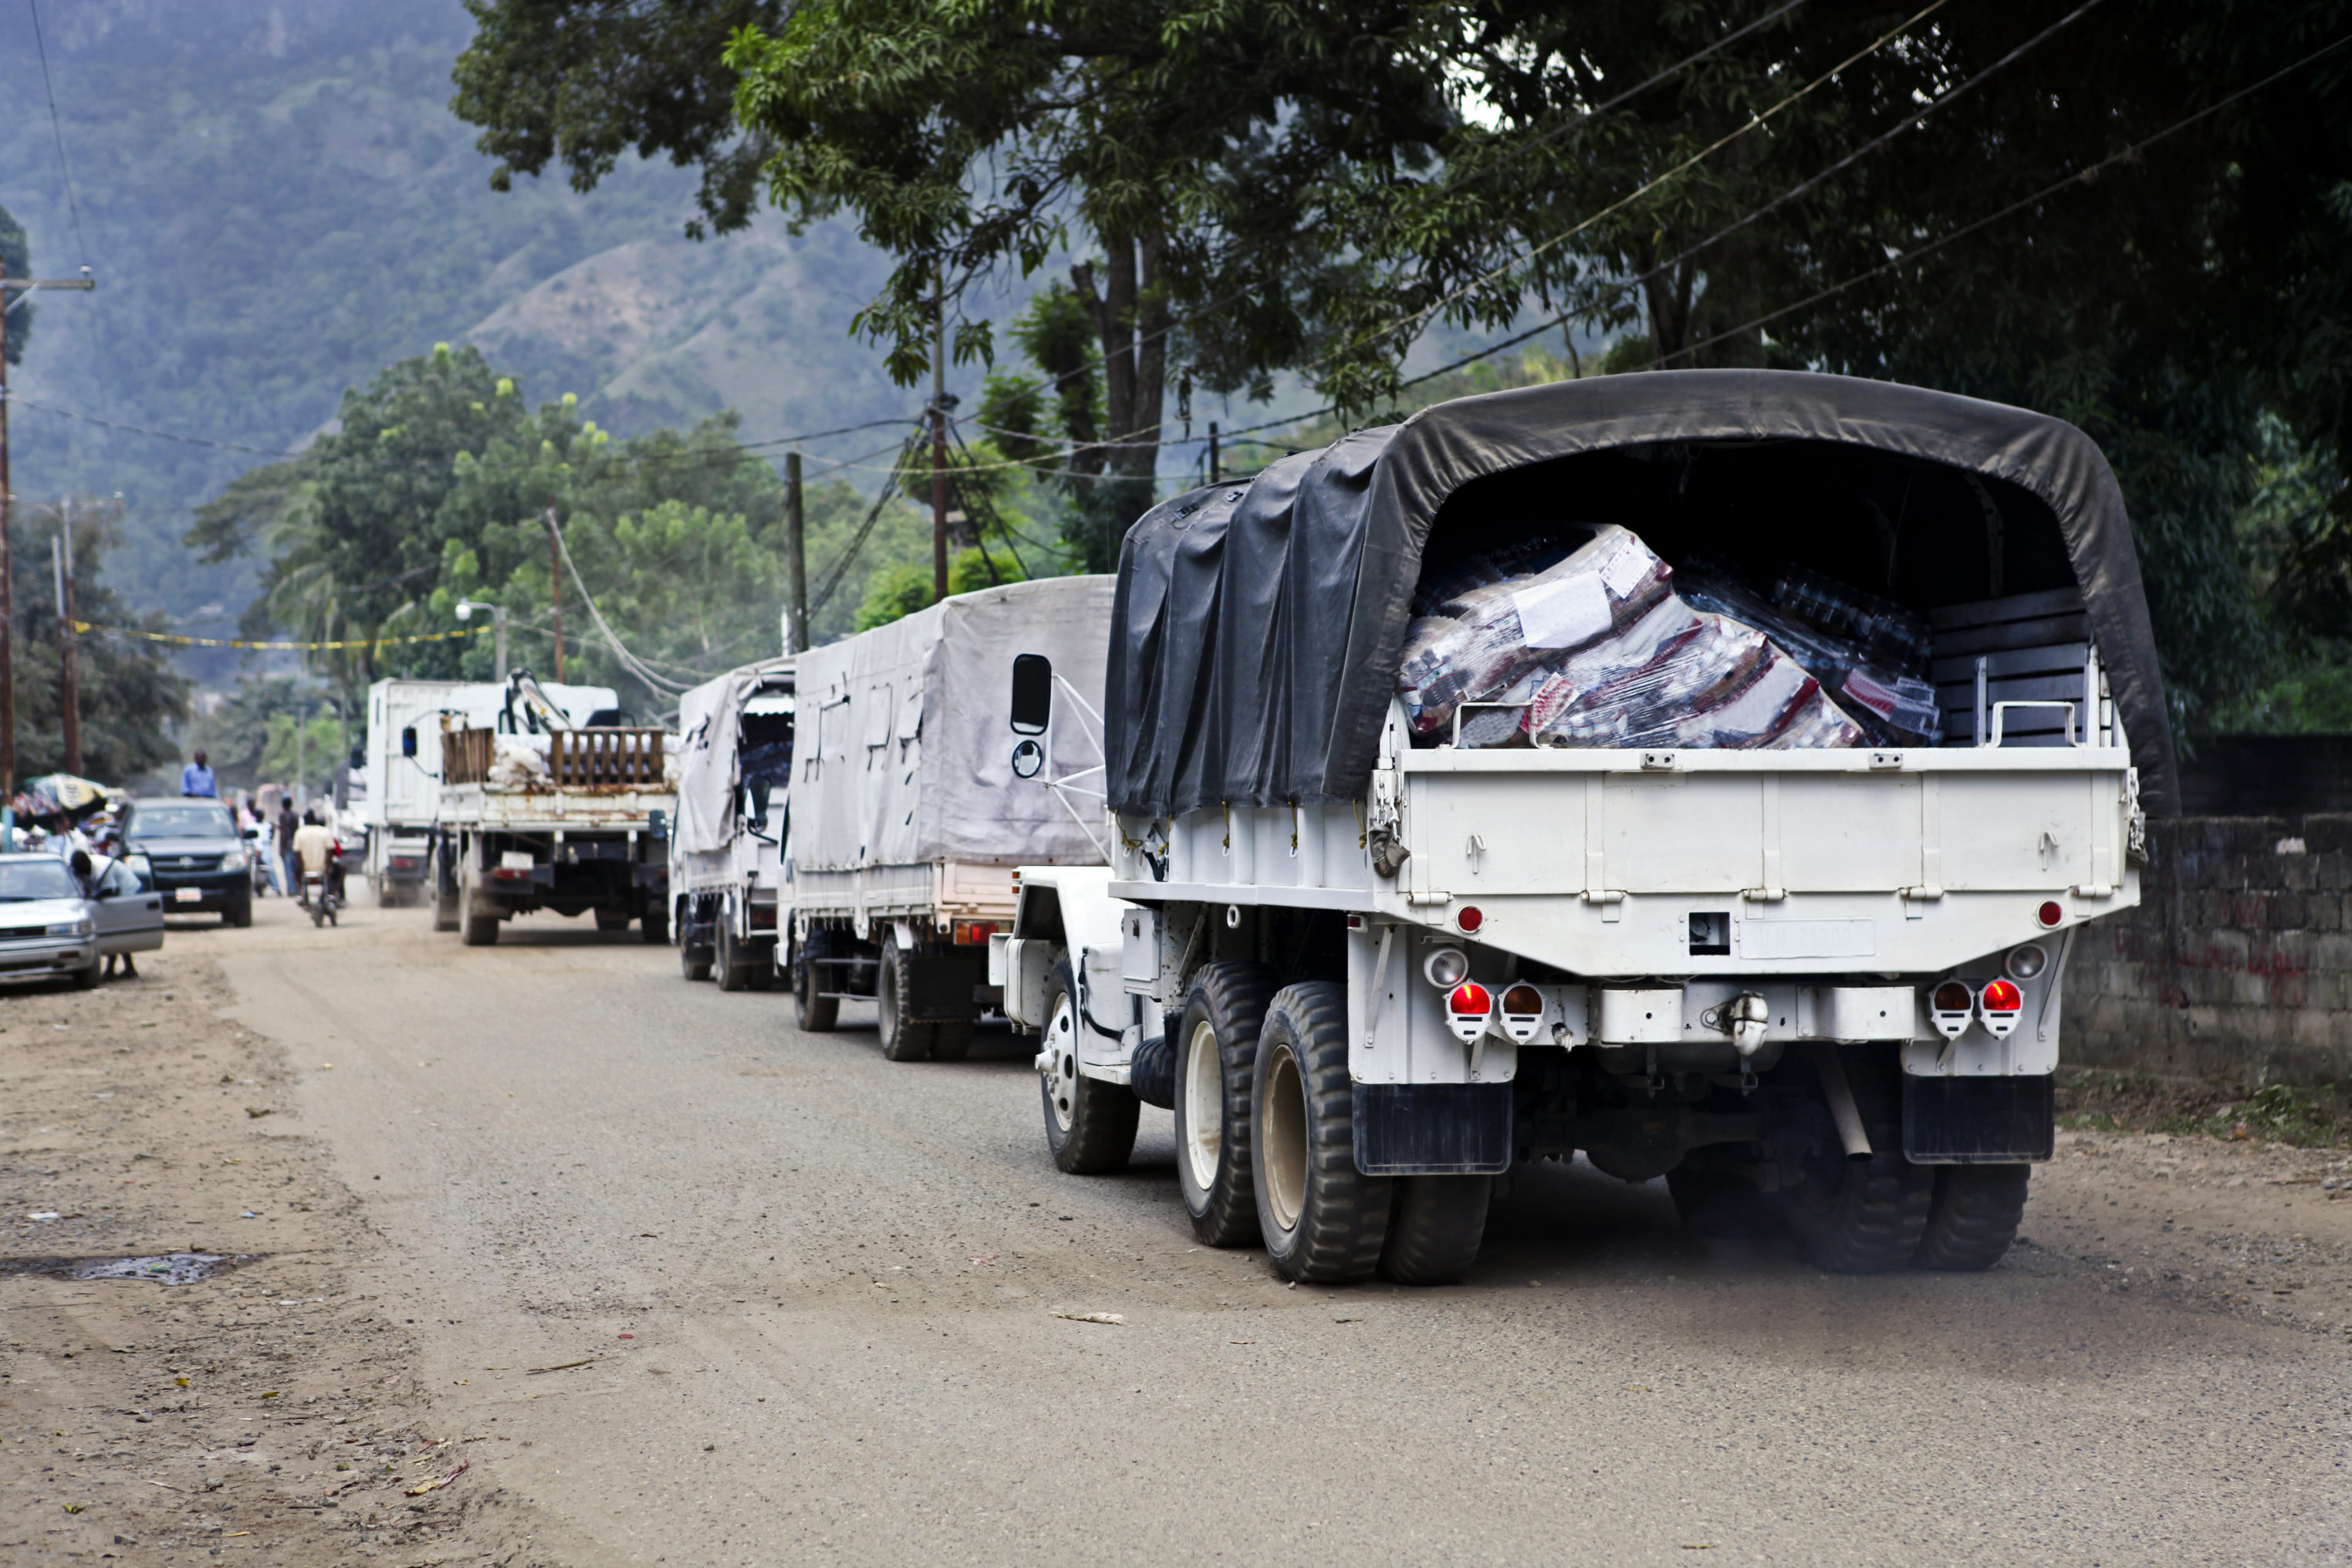 Trucks On The Way Of Haiti For Helping People After Earthqauke